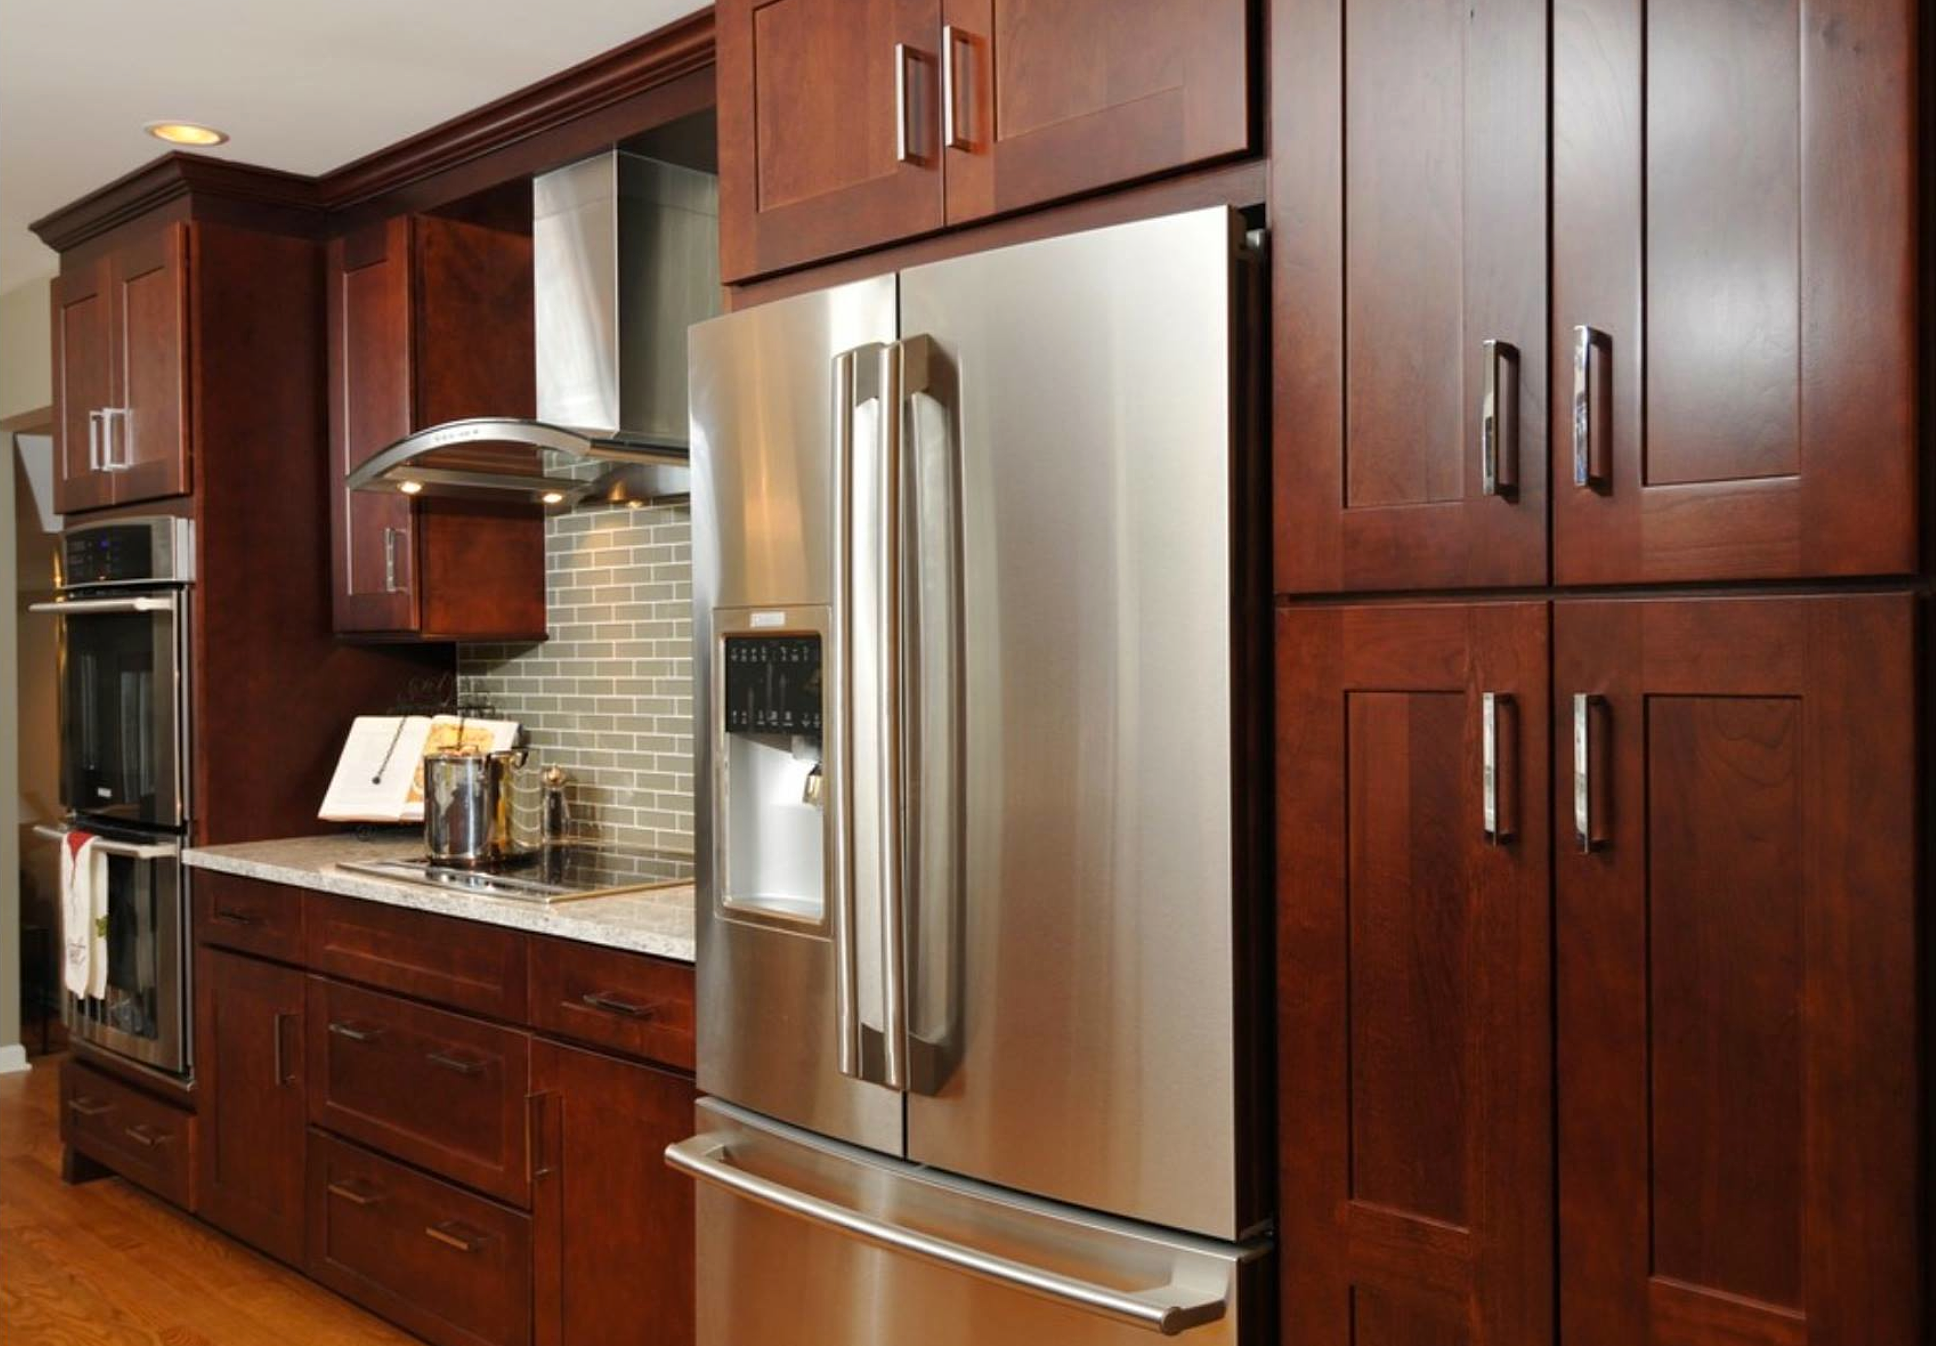 kitchen cabinet sales with Image97e on African Persa in addition Kitchen Bath Collection Eleanor 24 Single Bathroom Vanity Set KBCL1200 further Dining Room moreover Orren Ellis Luciano 3 Door Sliding Wardrobe Hmet3758 as well Hutches estate Corner.